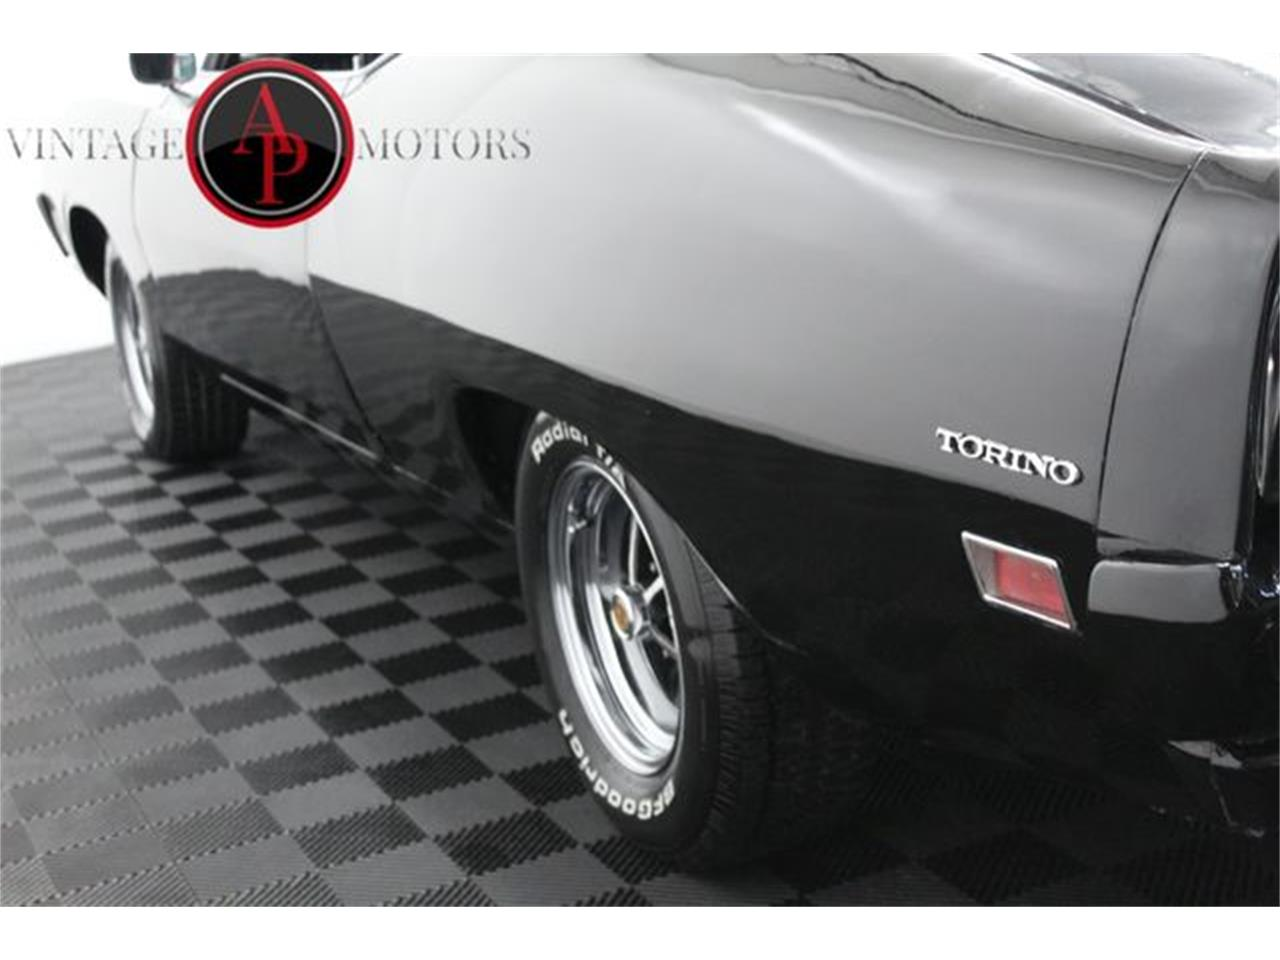 1970 Ford Torino (CC-1415293) for sale in Statesville, North Carolina